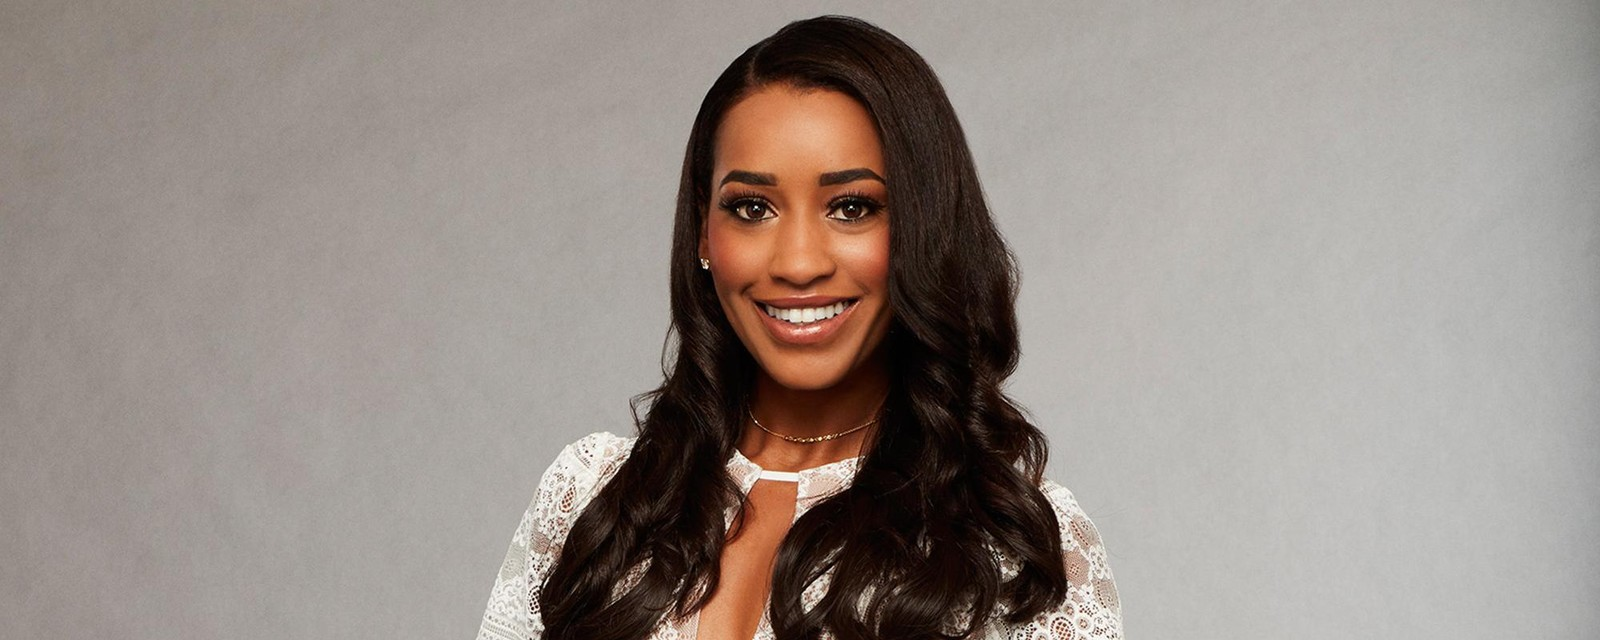 Seinne from 'The Bachelor' Season 22